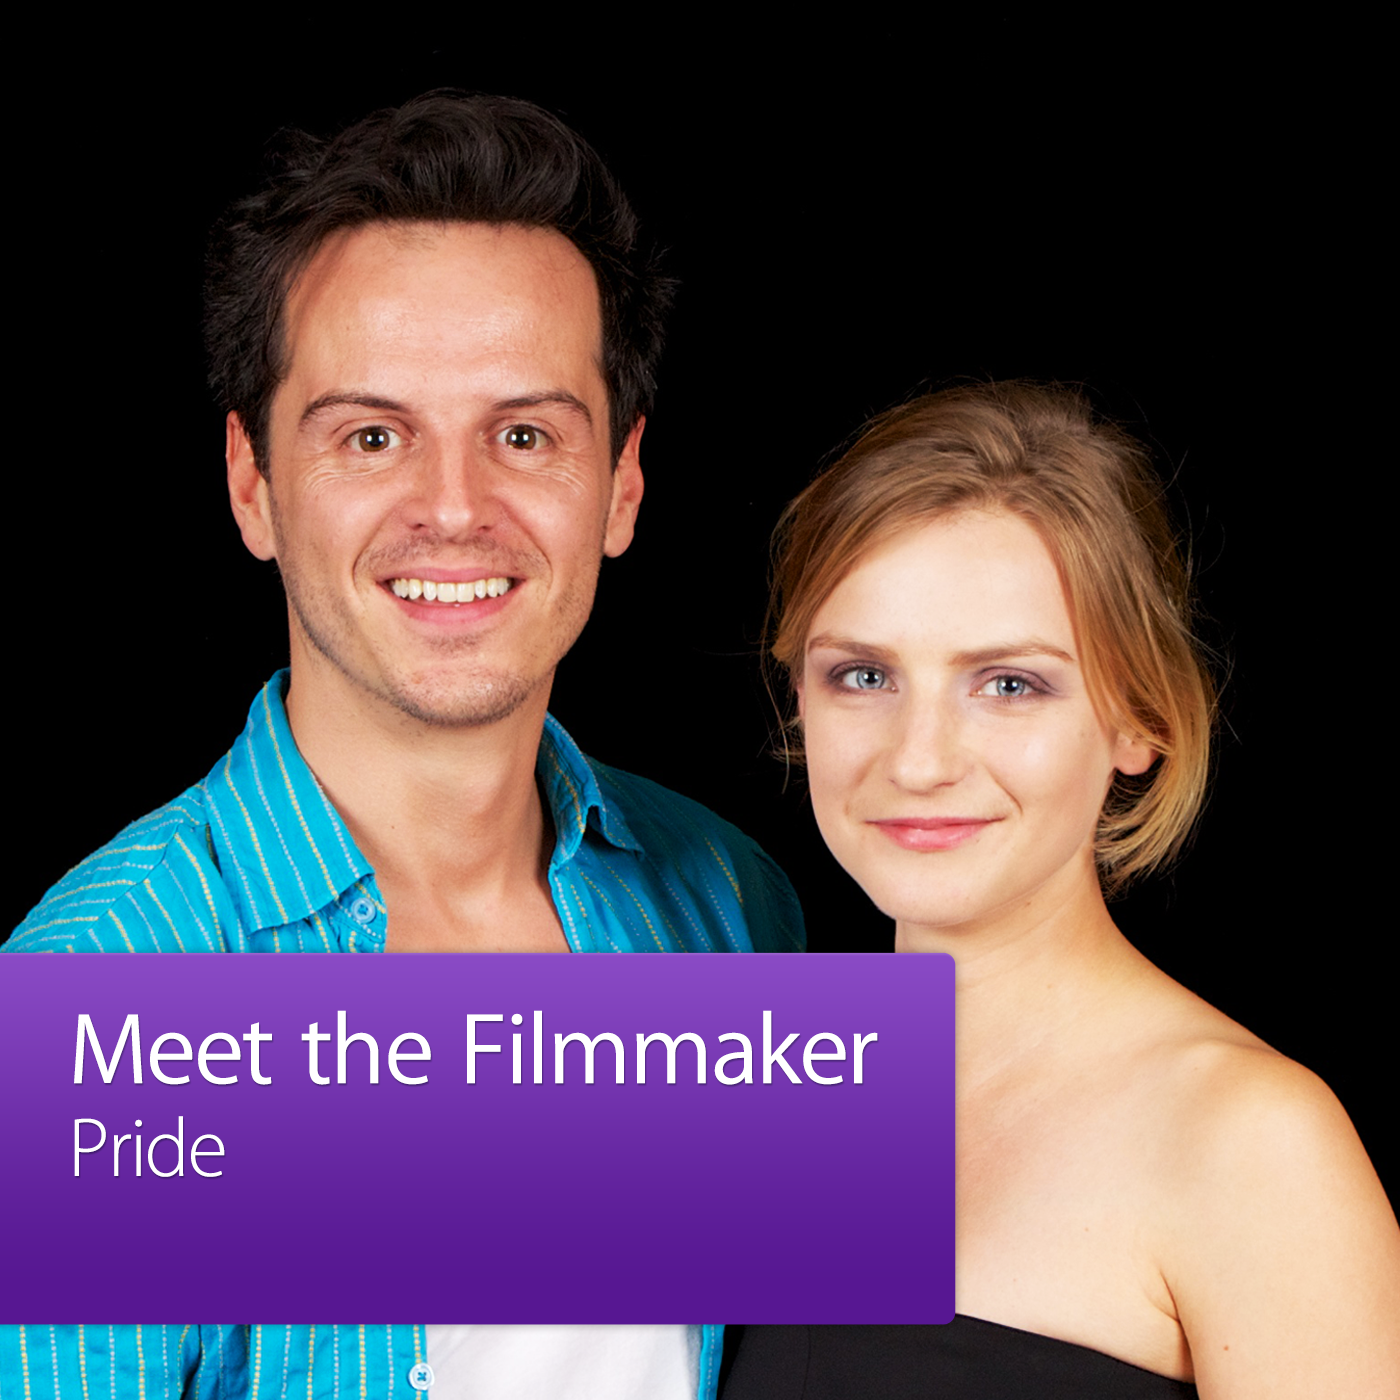 Pride: Meet the Filmmaker